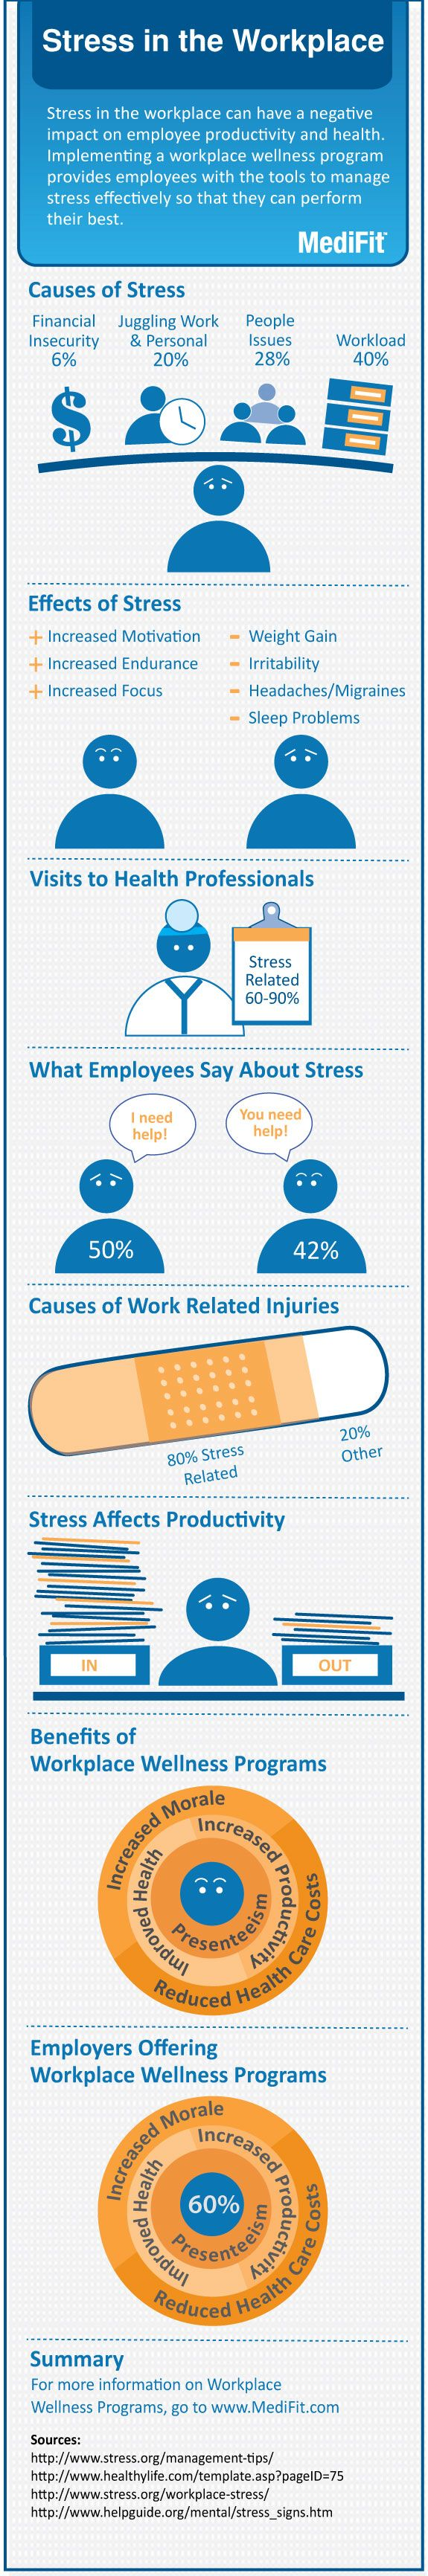 Workload is a major factor in work place stress among workers. Implementing a workplace health and wellness program can lower stress and increase prod